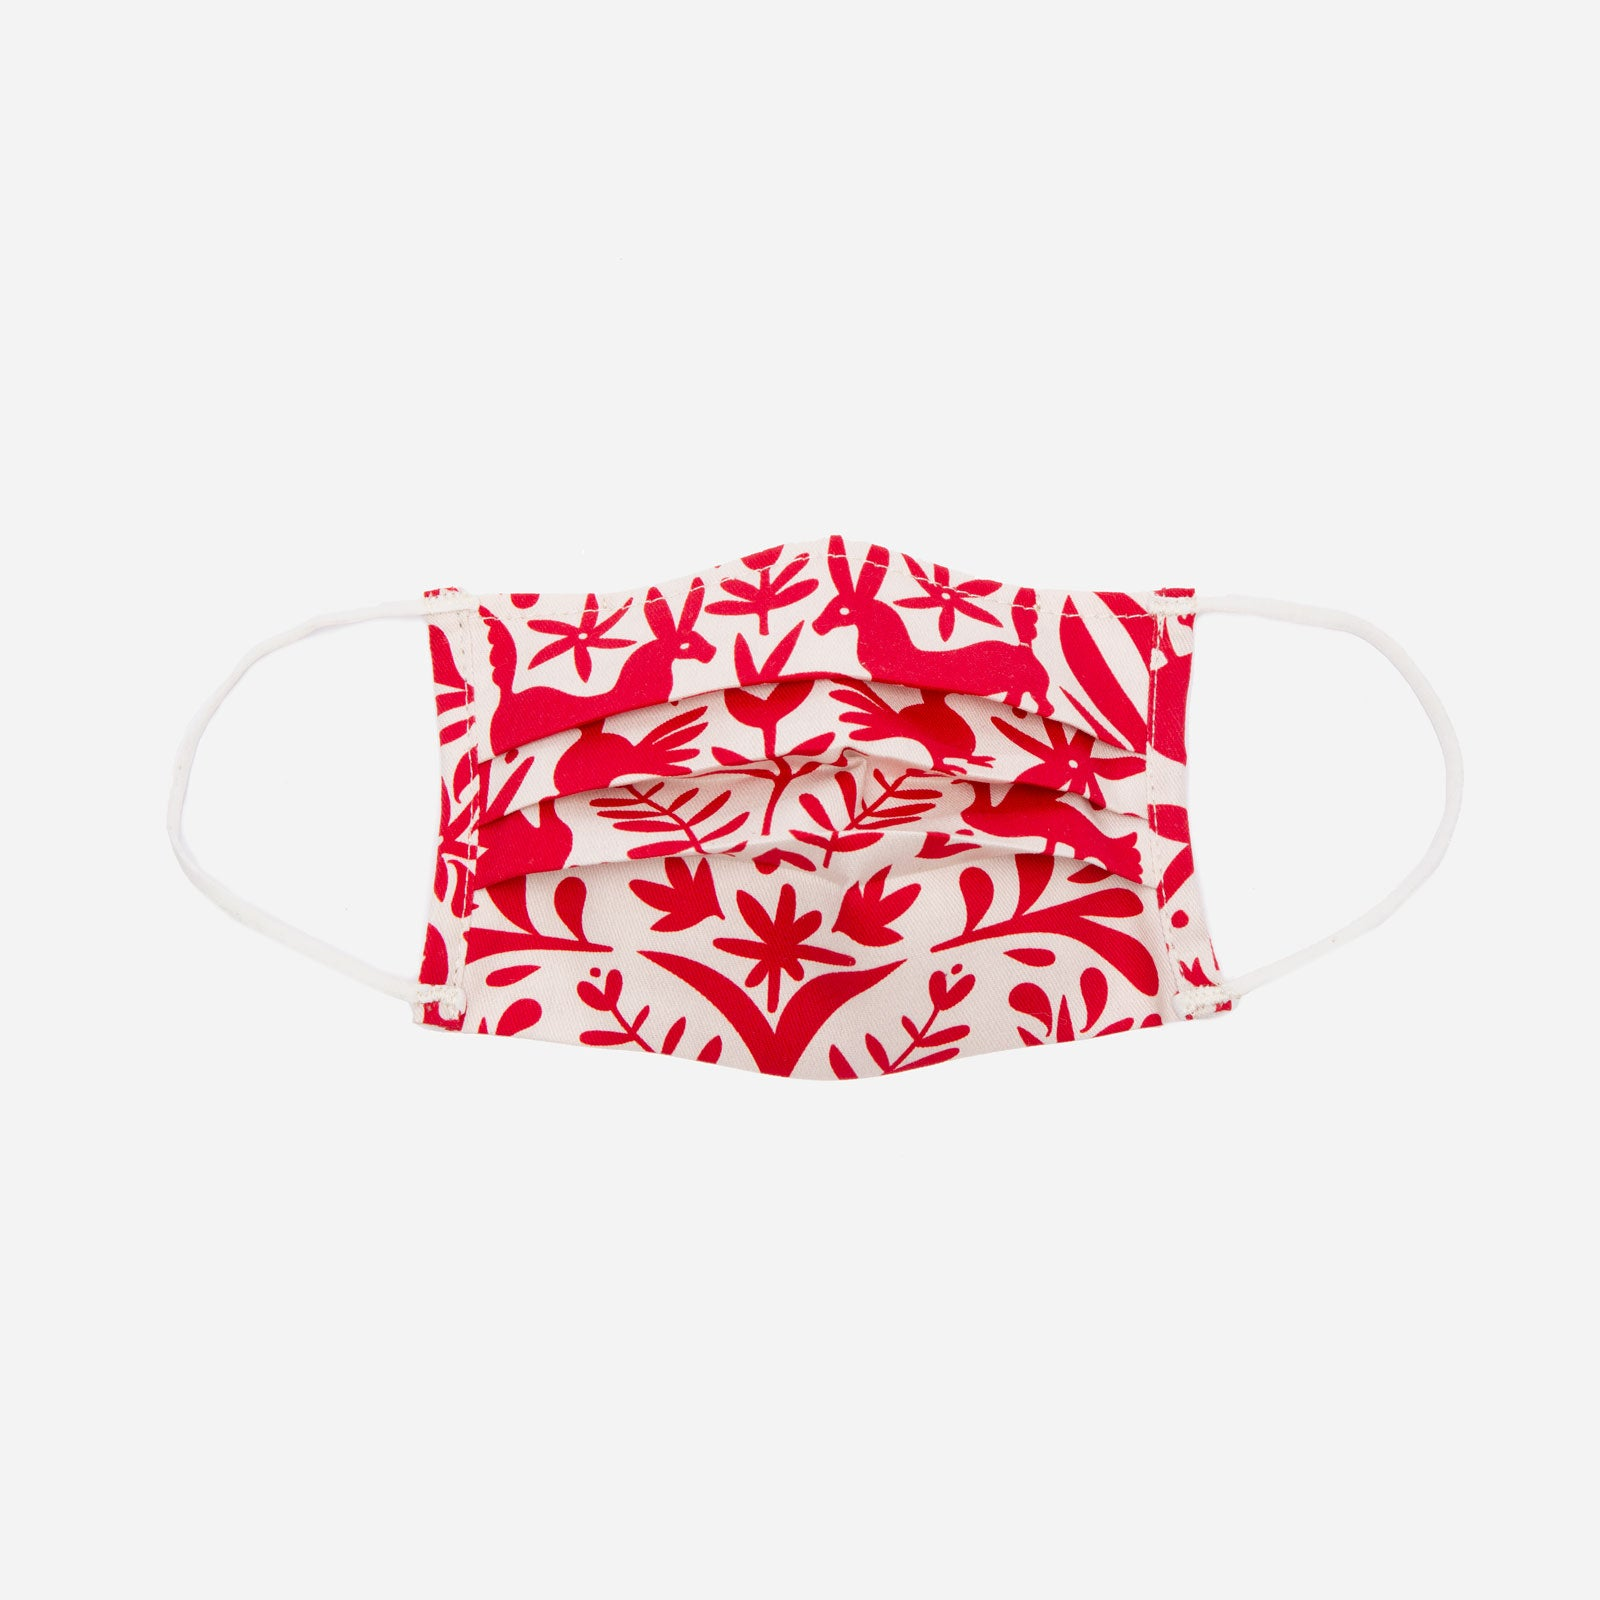 Folded Mask Veracruz Print Red